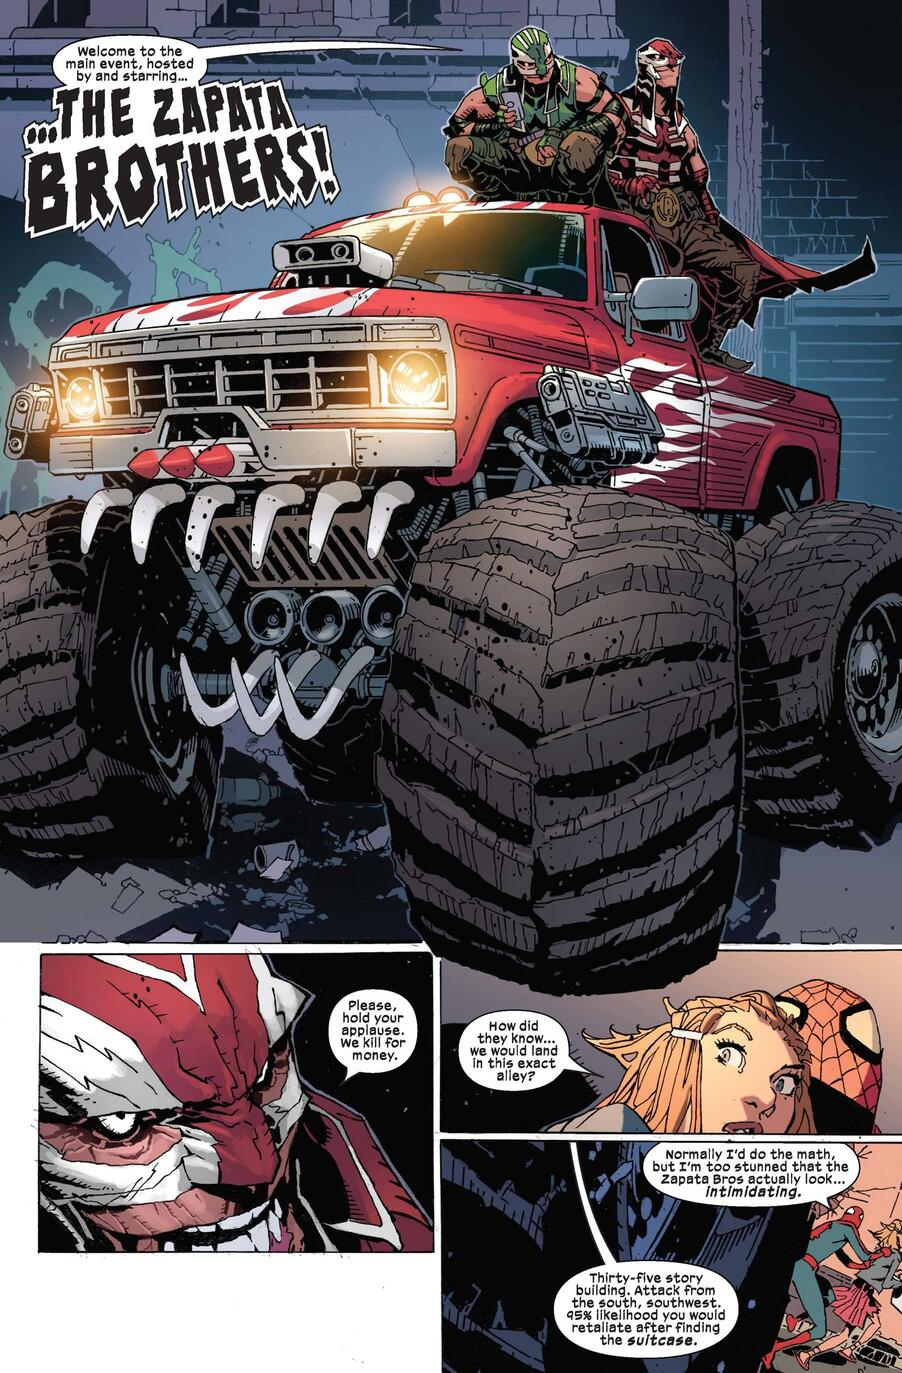 Spider-Man encounters two monster-truck driving foes!